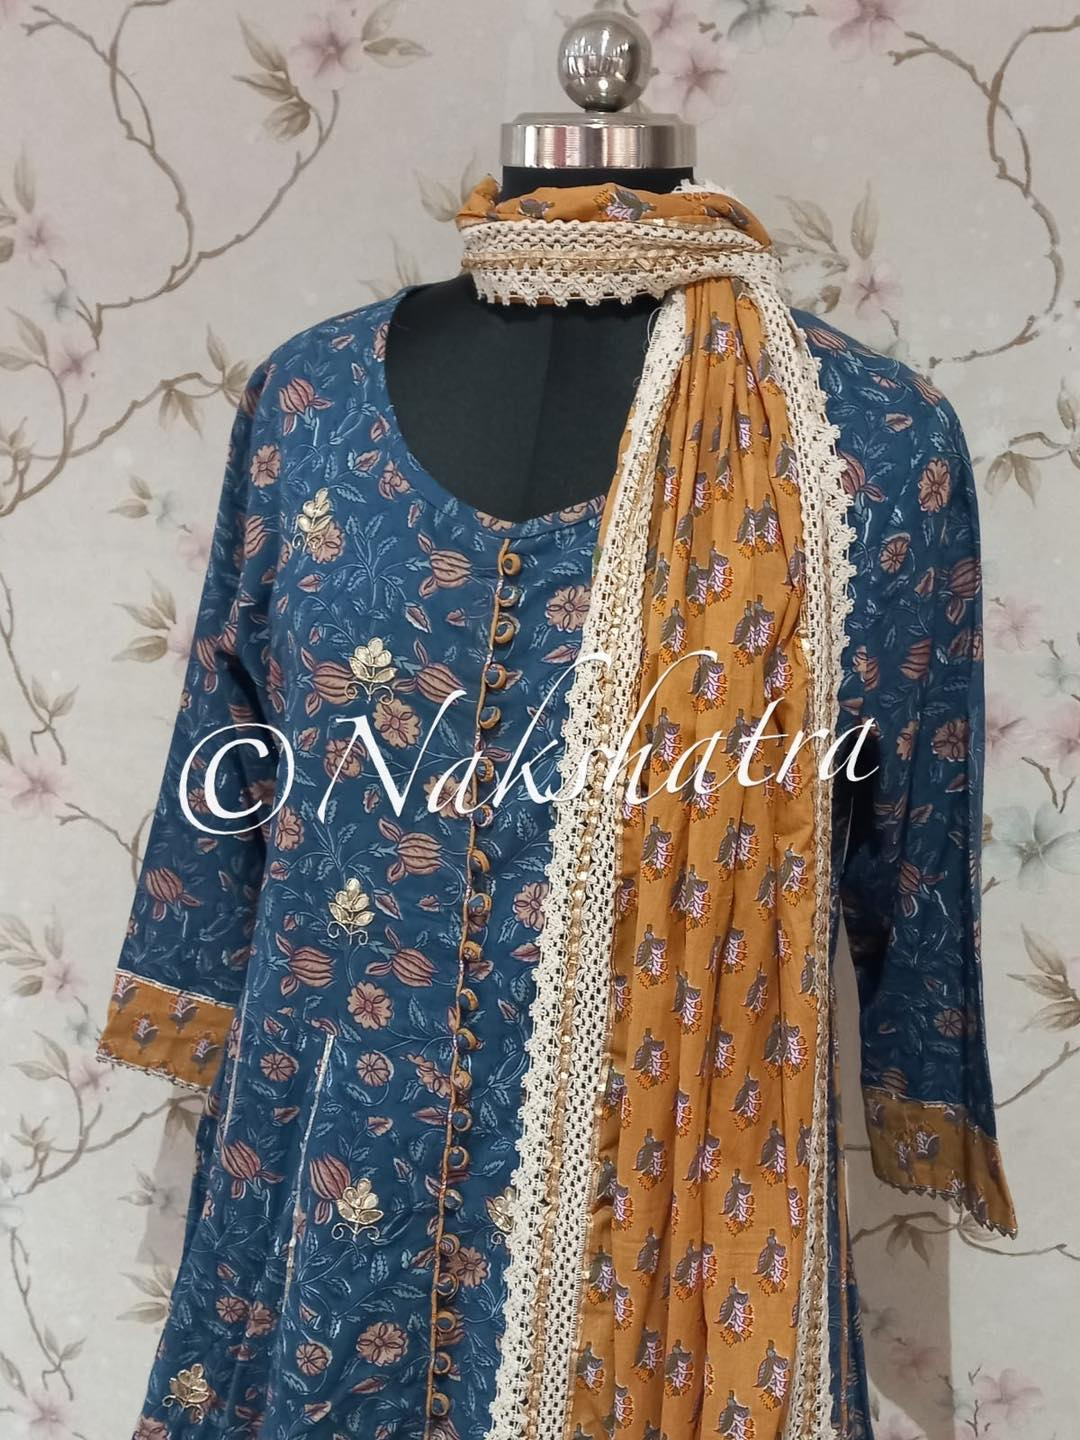 Beautiful jaipur printed very fine and pure soft cotton ghararas sets with beautiful dupatats